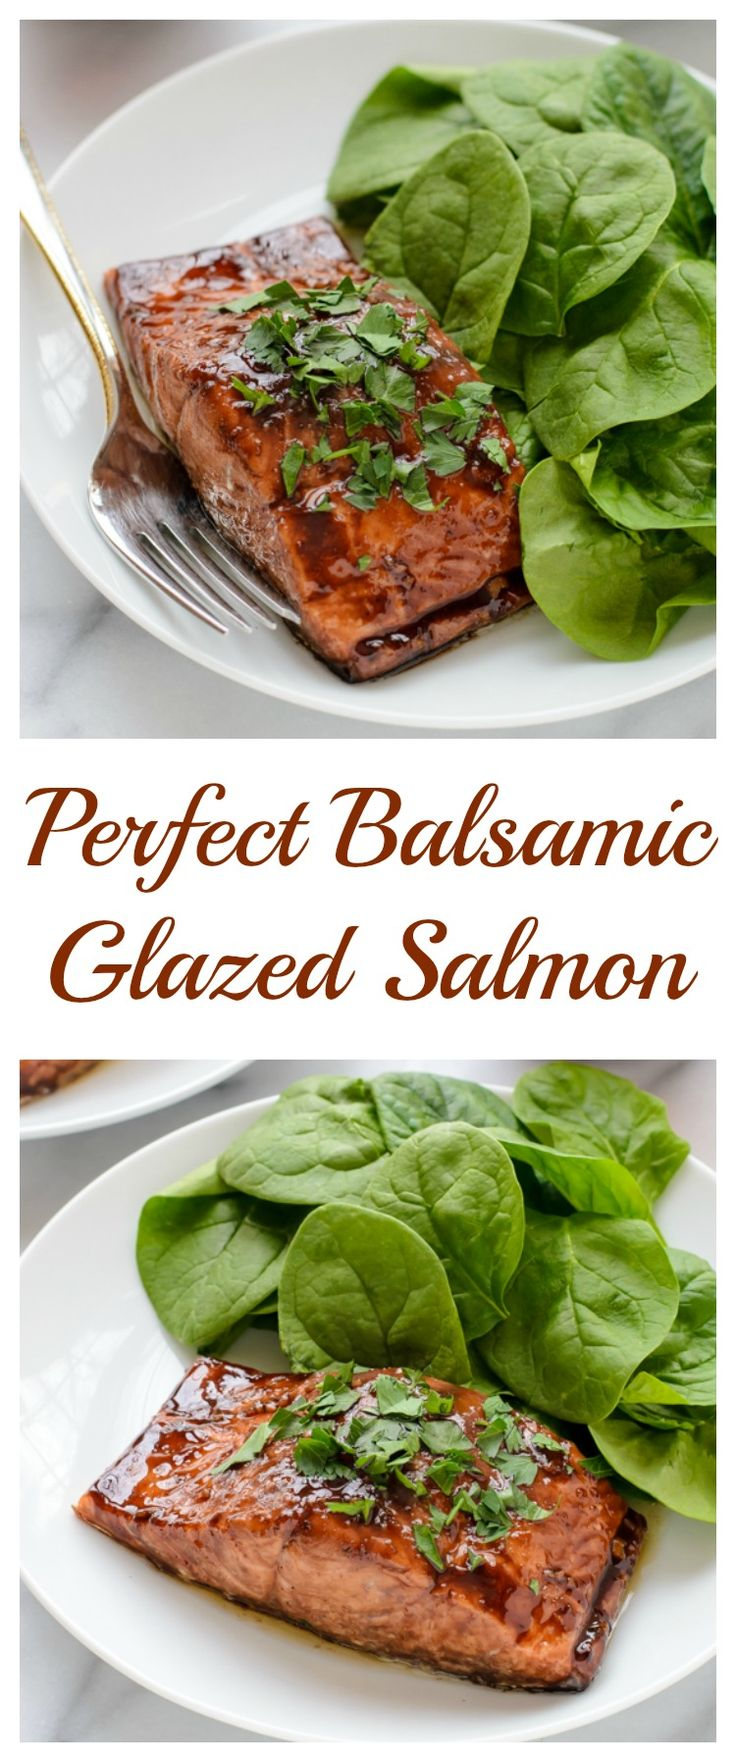 Perfect Balsamic Glazed Salmon. Easy, impressive and ready in 20 minutes!